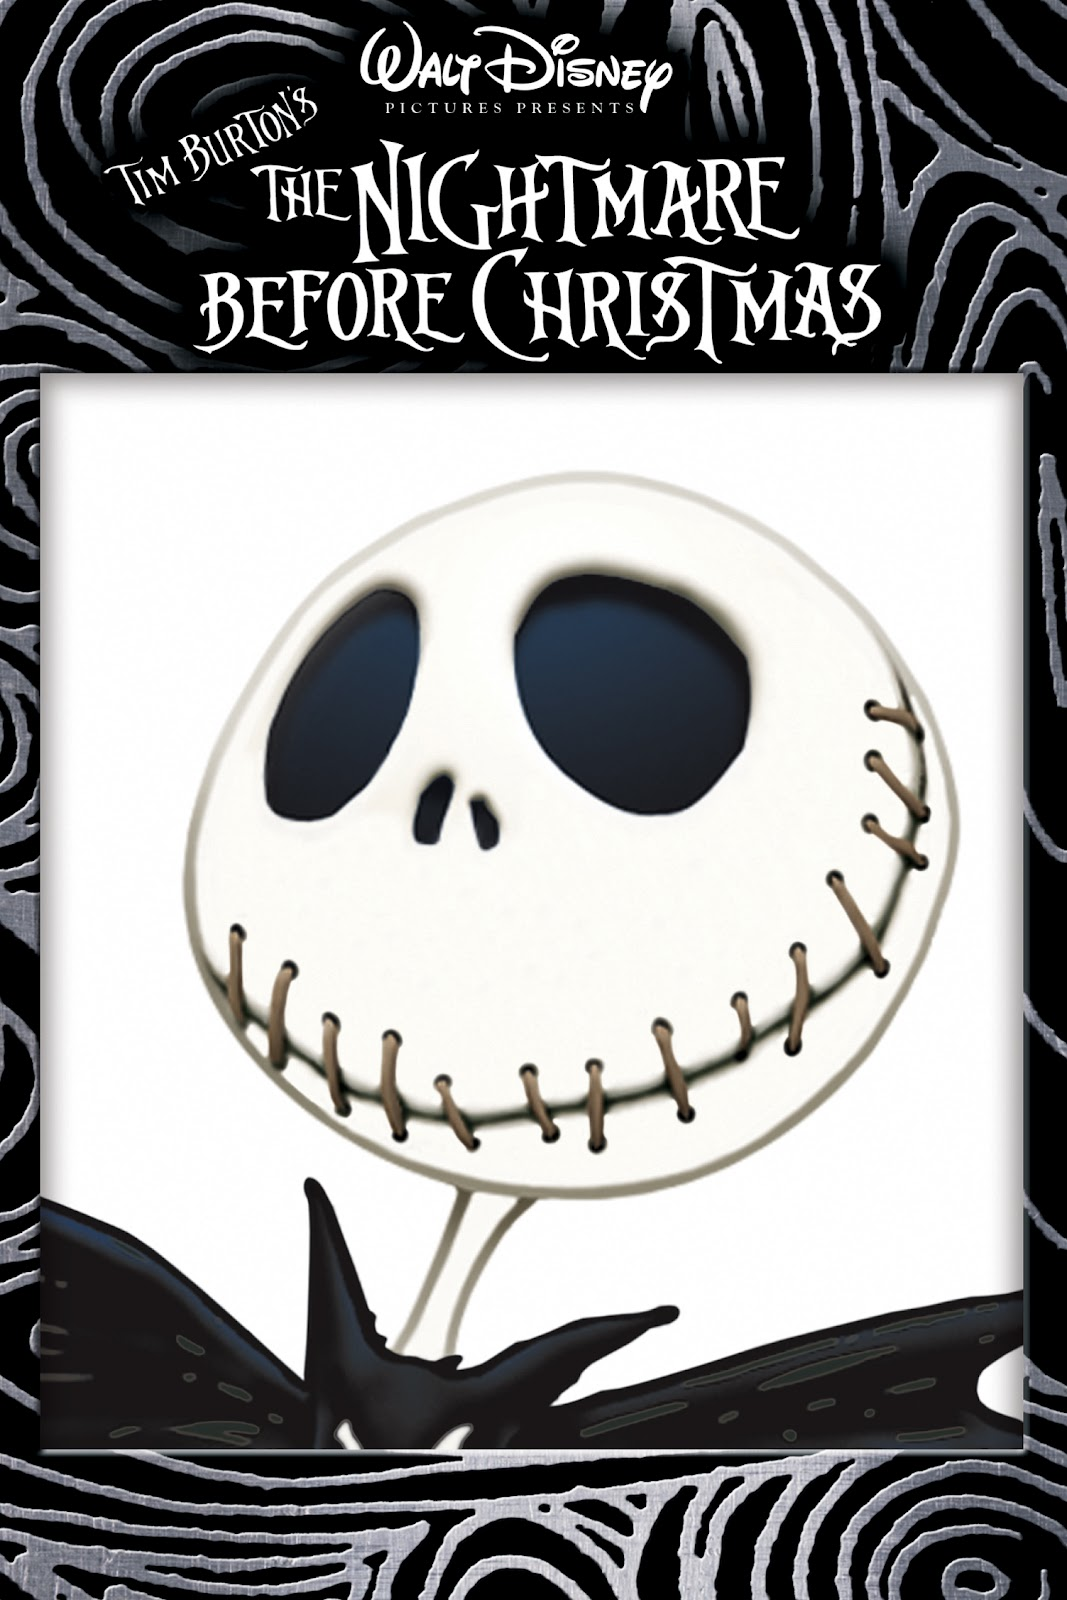 The Nightmare Before Christmas cover art